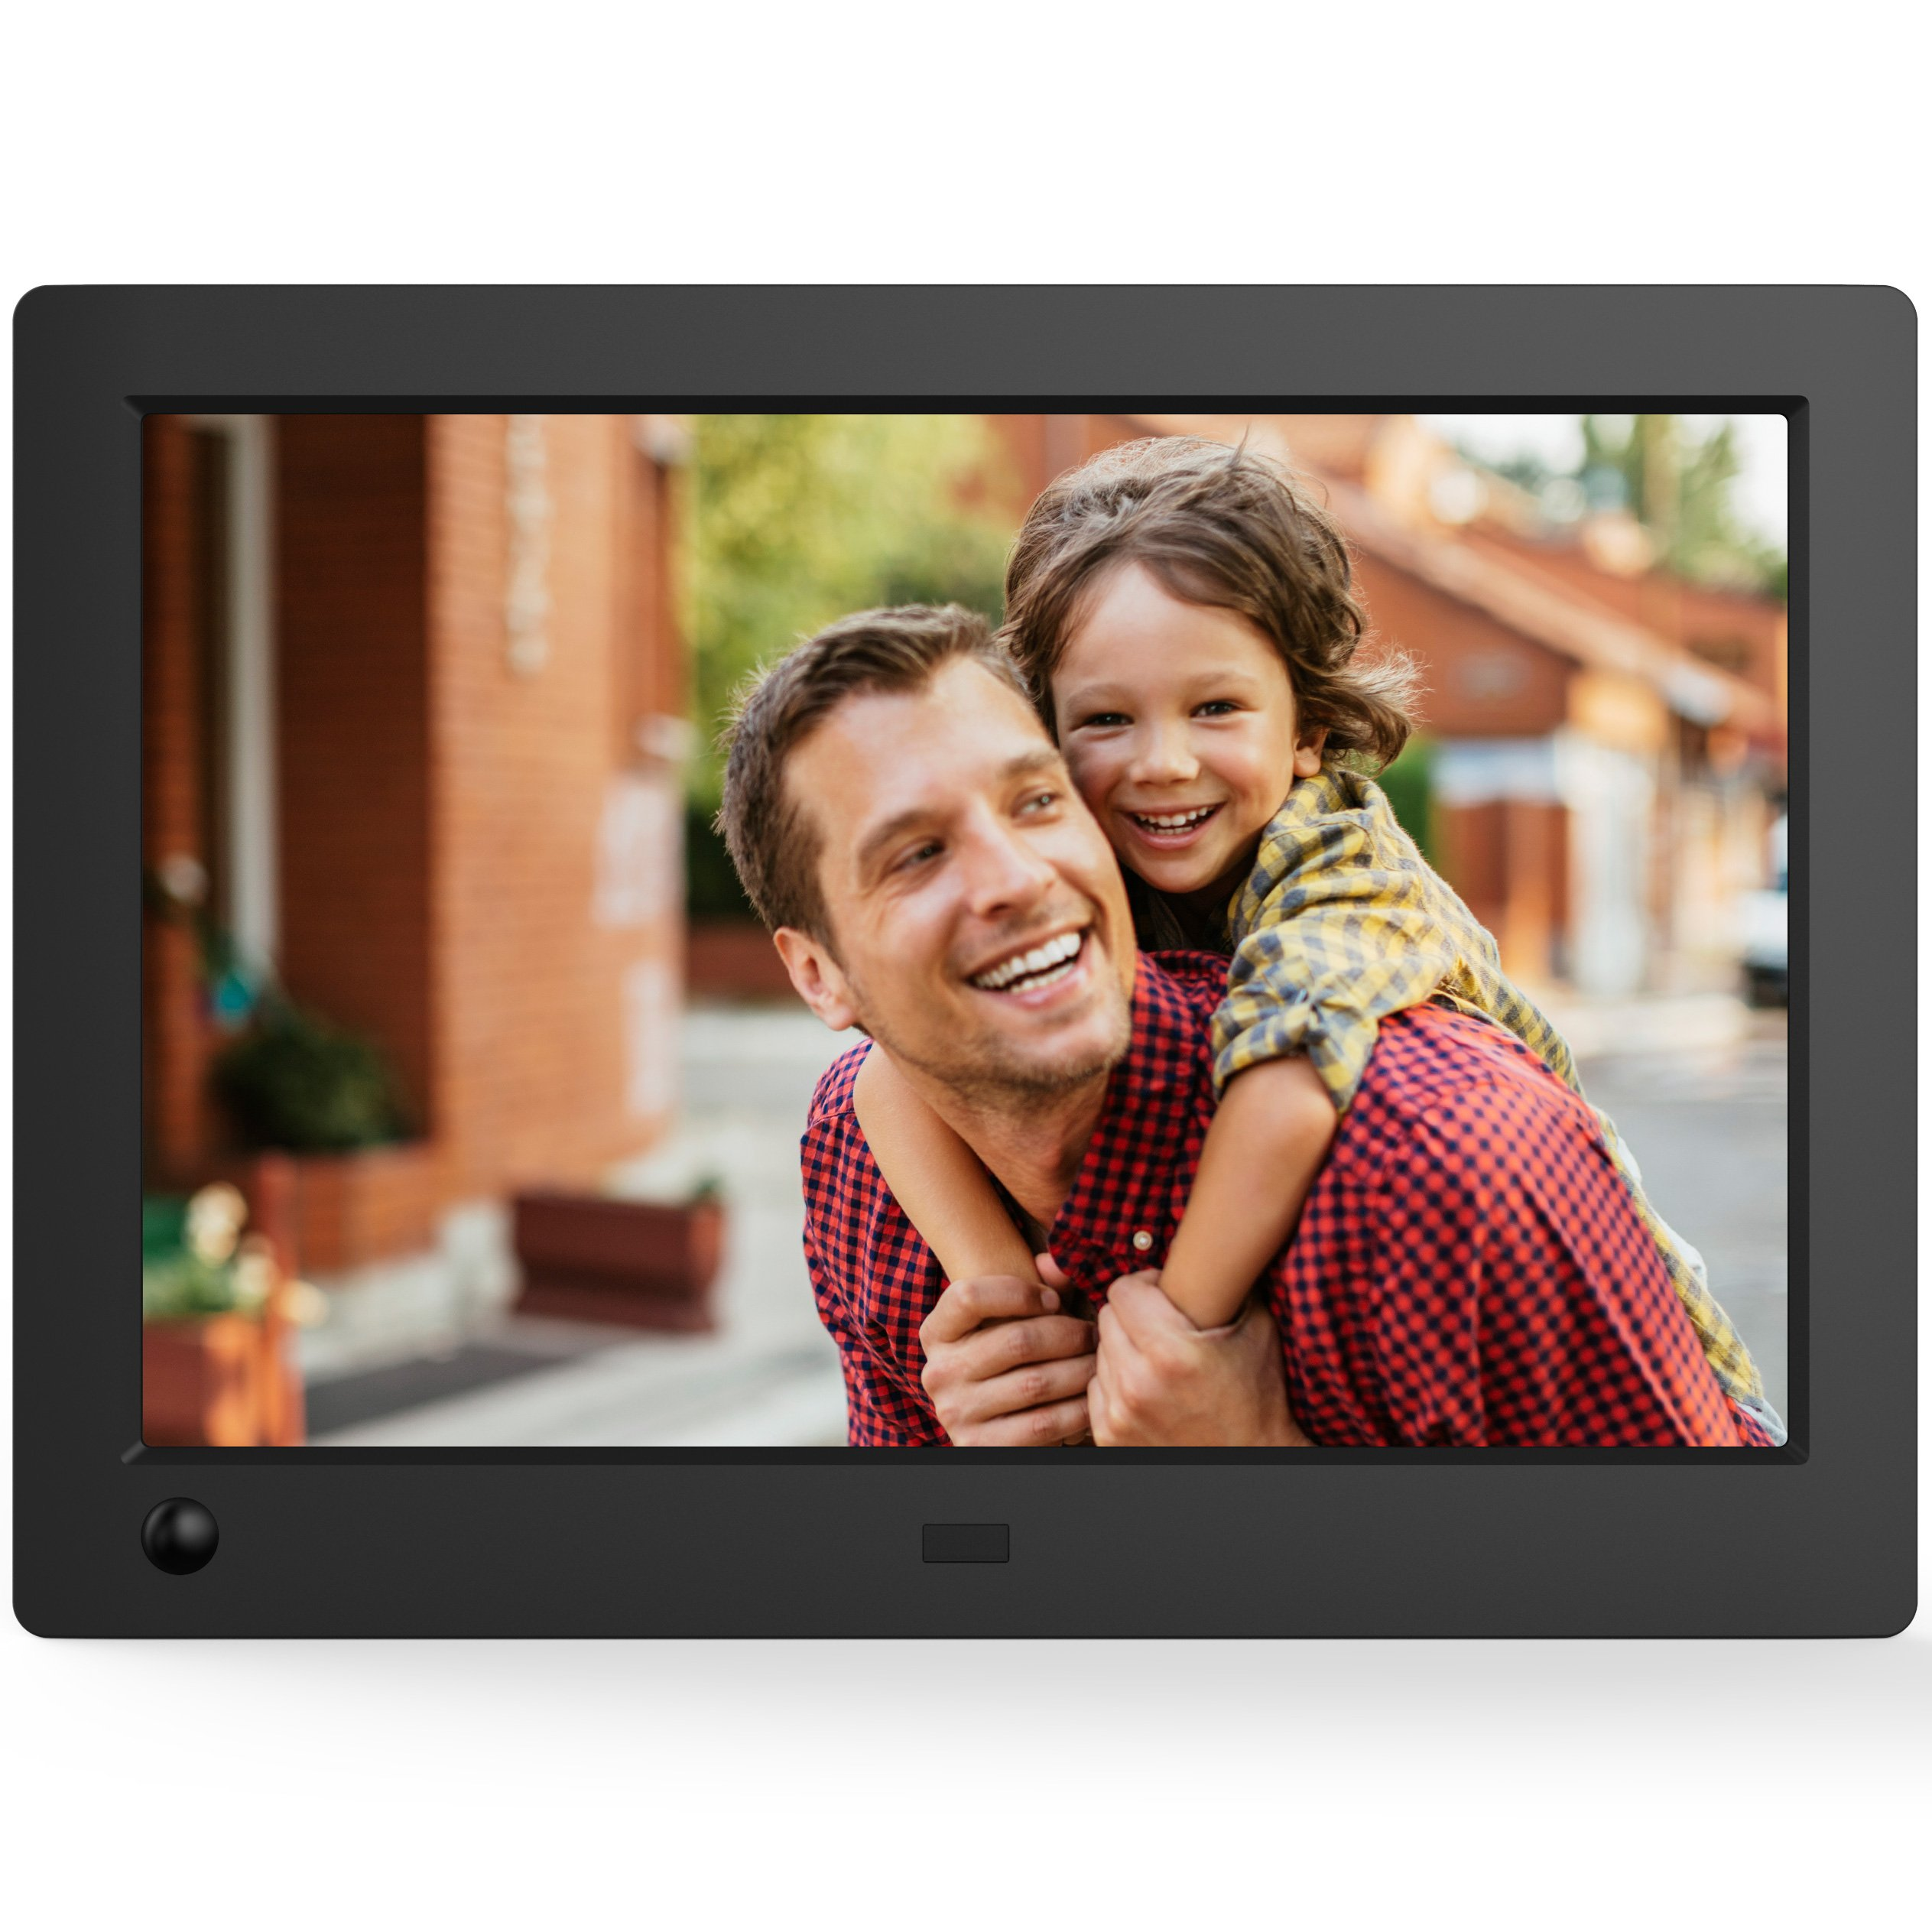 NIX X08G Advance 8'' Widescreen Hi-Res Digital Photo & HD Video Frame with Hu-Motion Sensor, Black by NIX